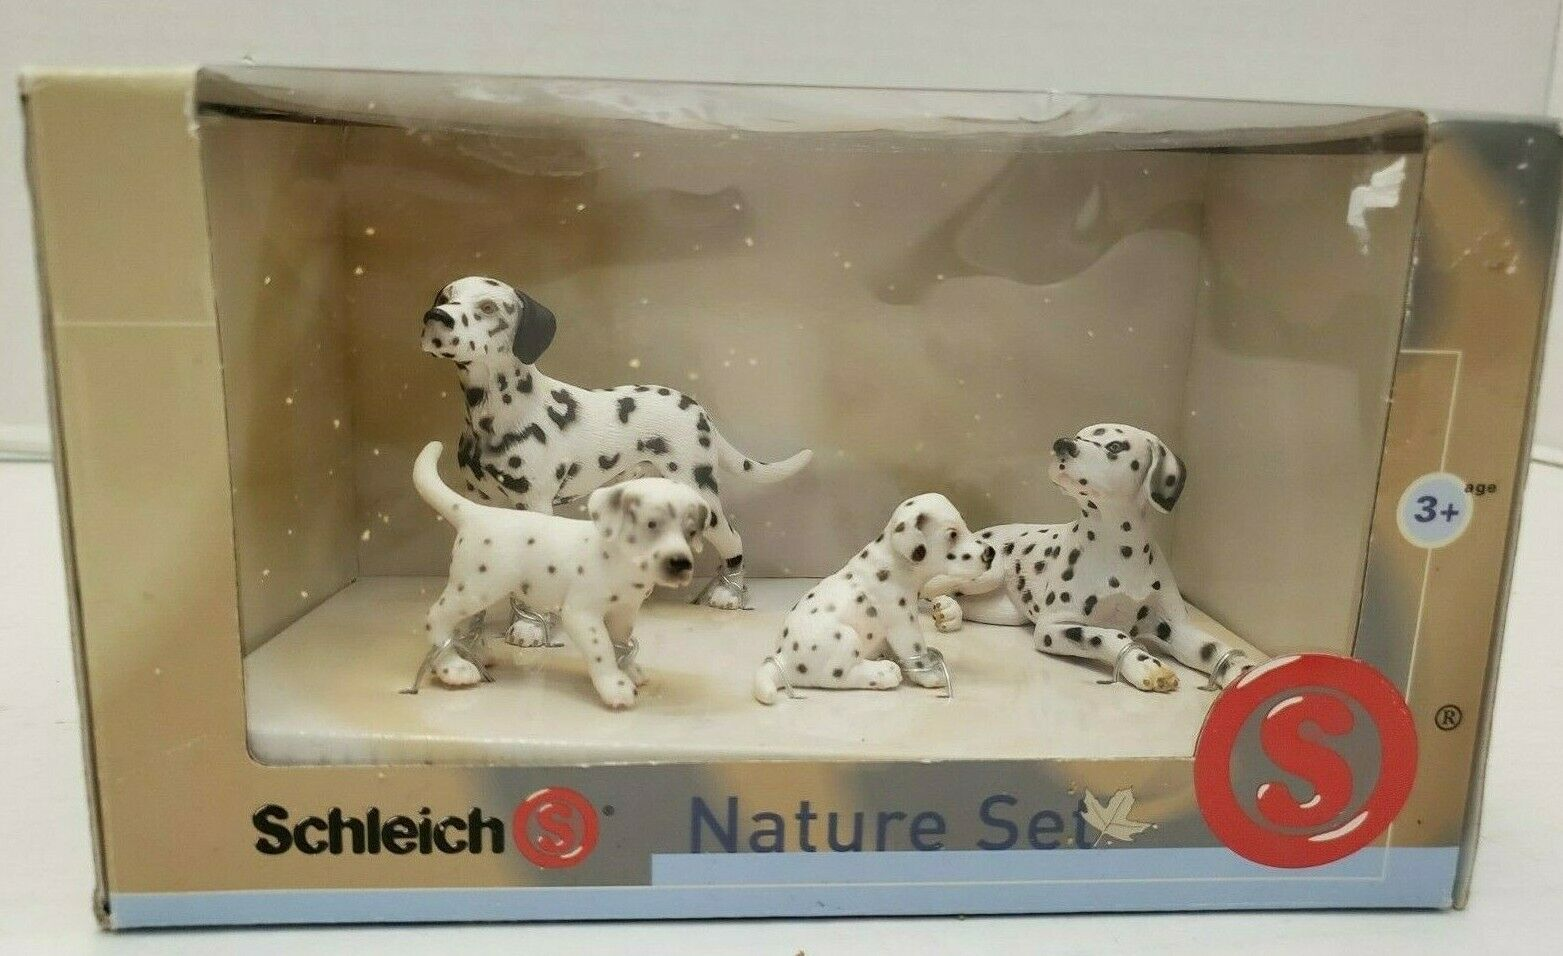 Schleich Dog Family Nature Set Dalmatian Mom Dad Puppy Girl Boy Animal Figure 3+